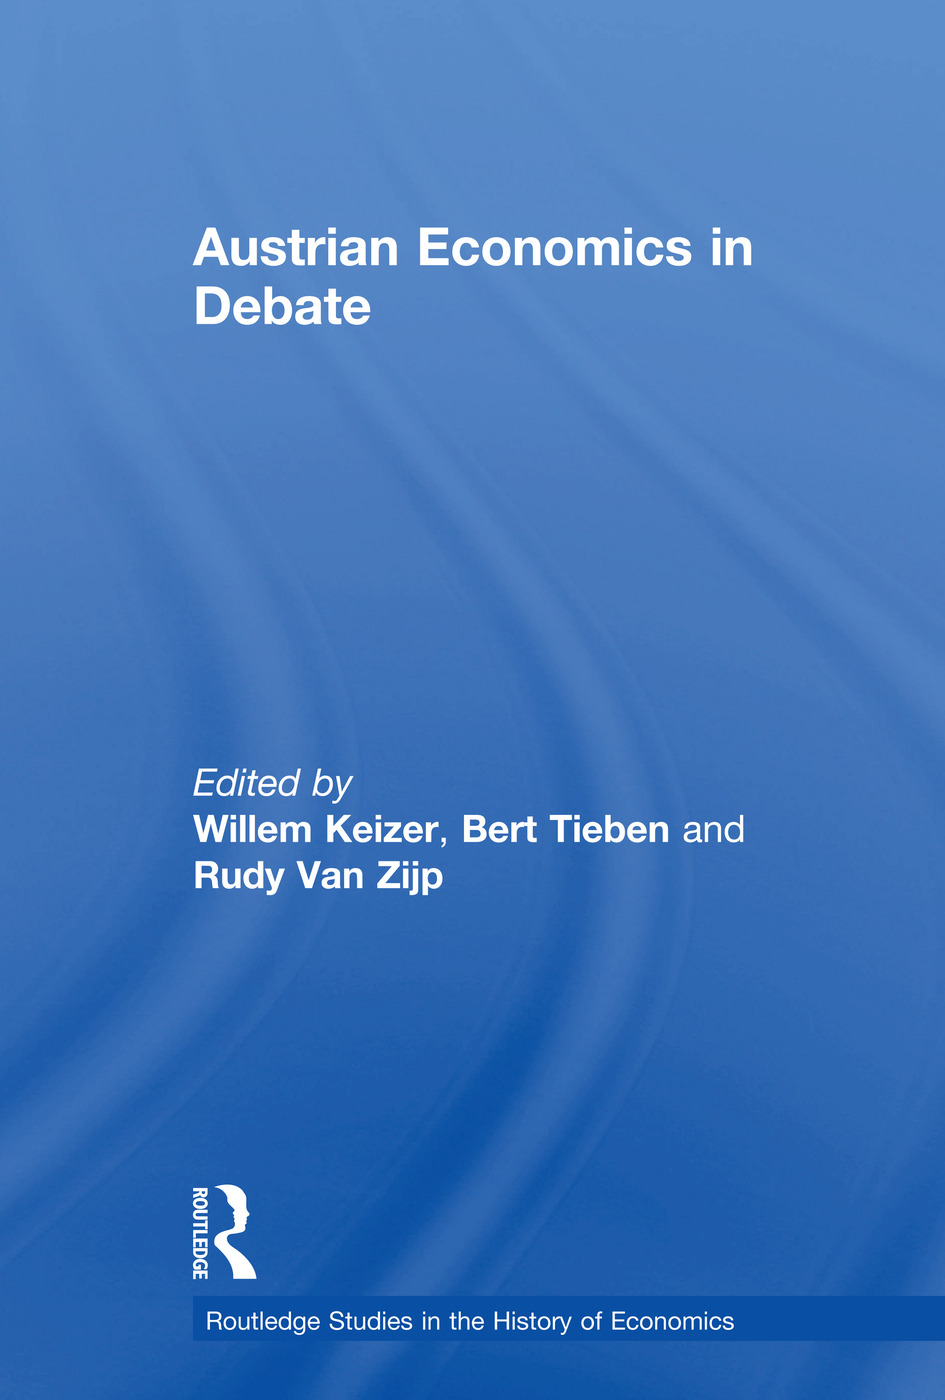 Austrian Economics in Debate